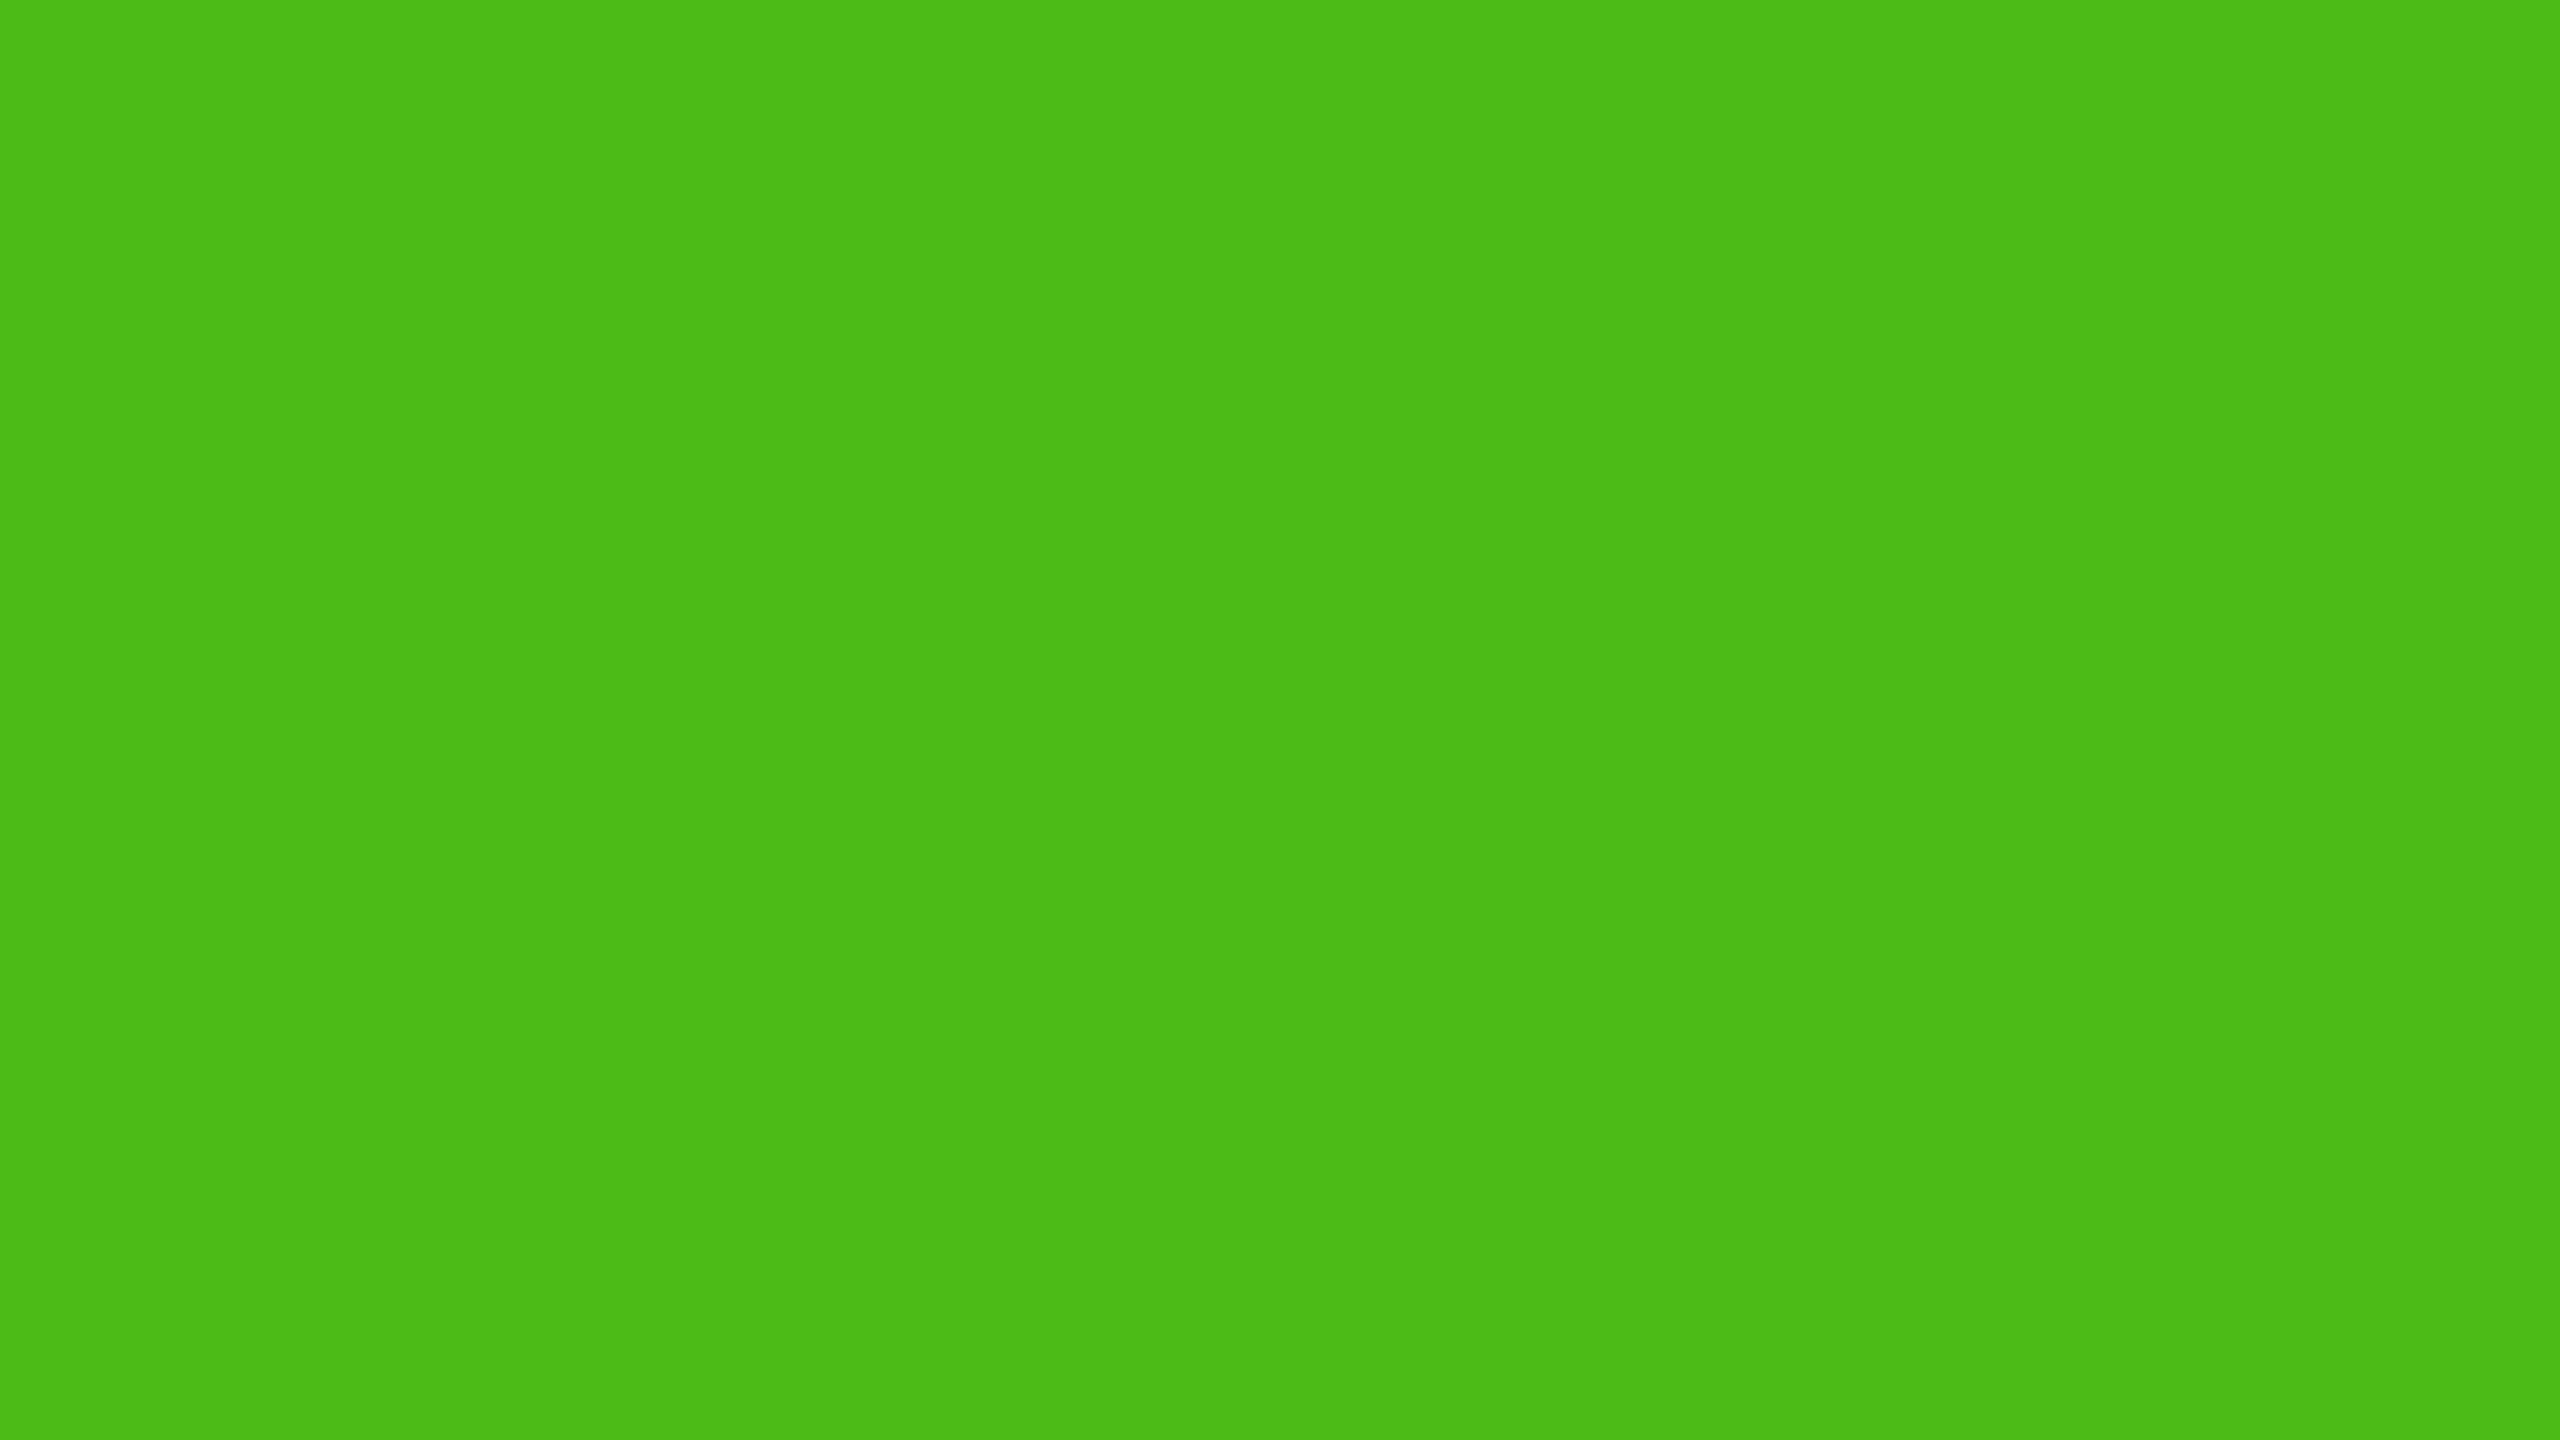 2560x1440 Kelly Green Solid Color Background